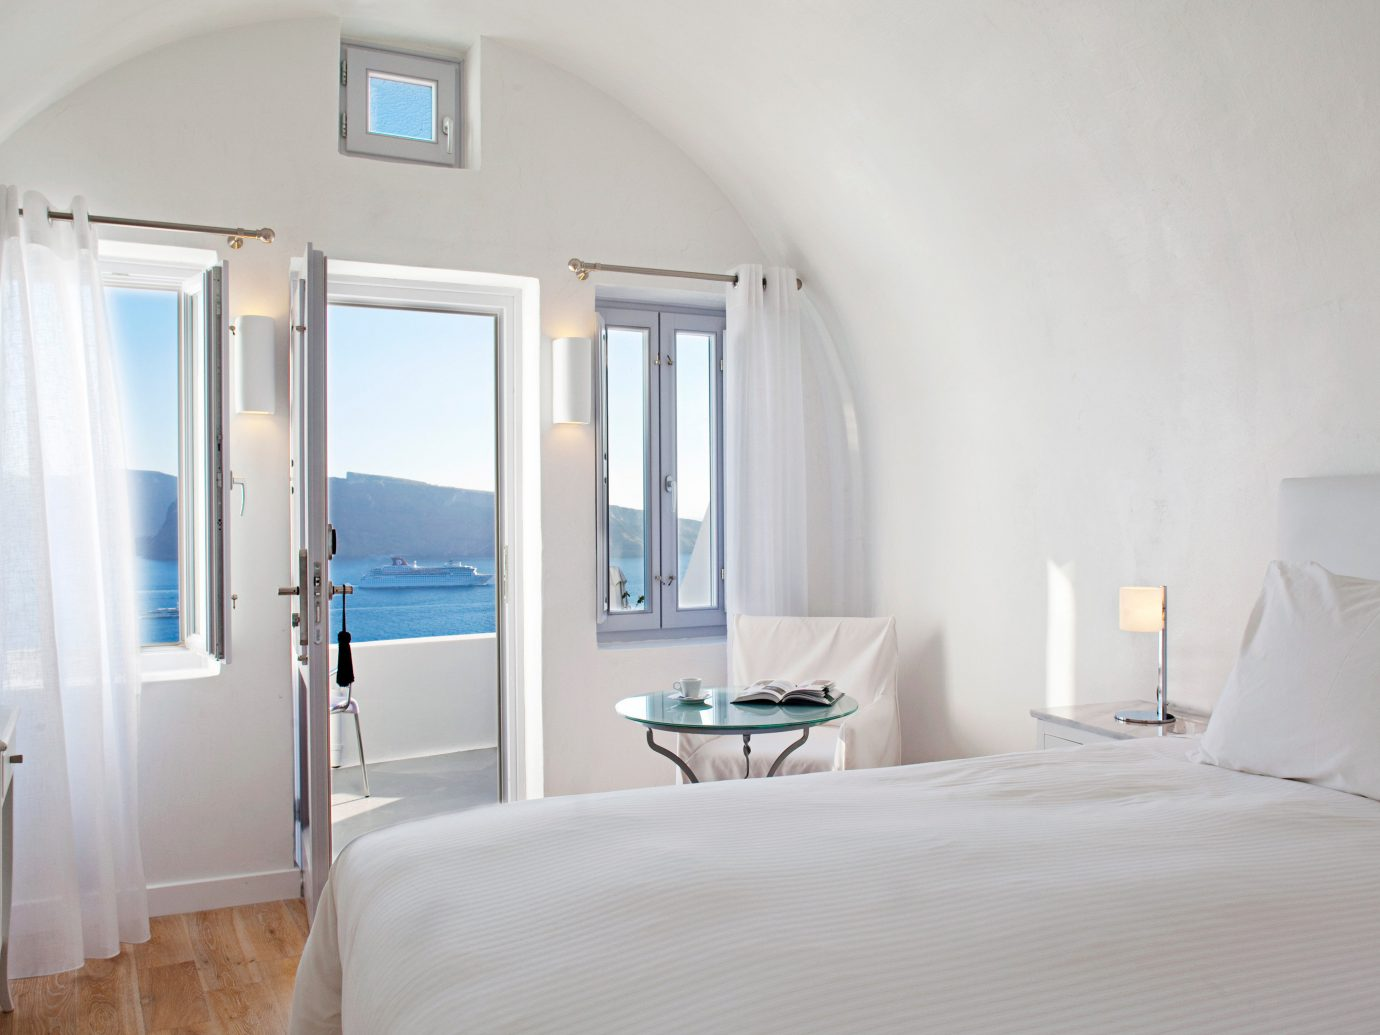 Beachfront Bedroom Greece Hotels Luxury Modern Romance Santorini Scenic views Suite wall indoor bed floor room property white scene cottage interior design estate real estate hotel apartment Villa furniture